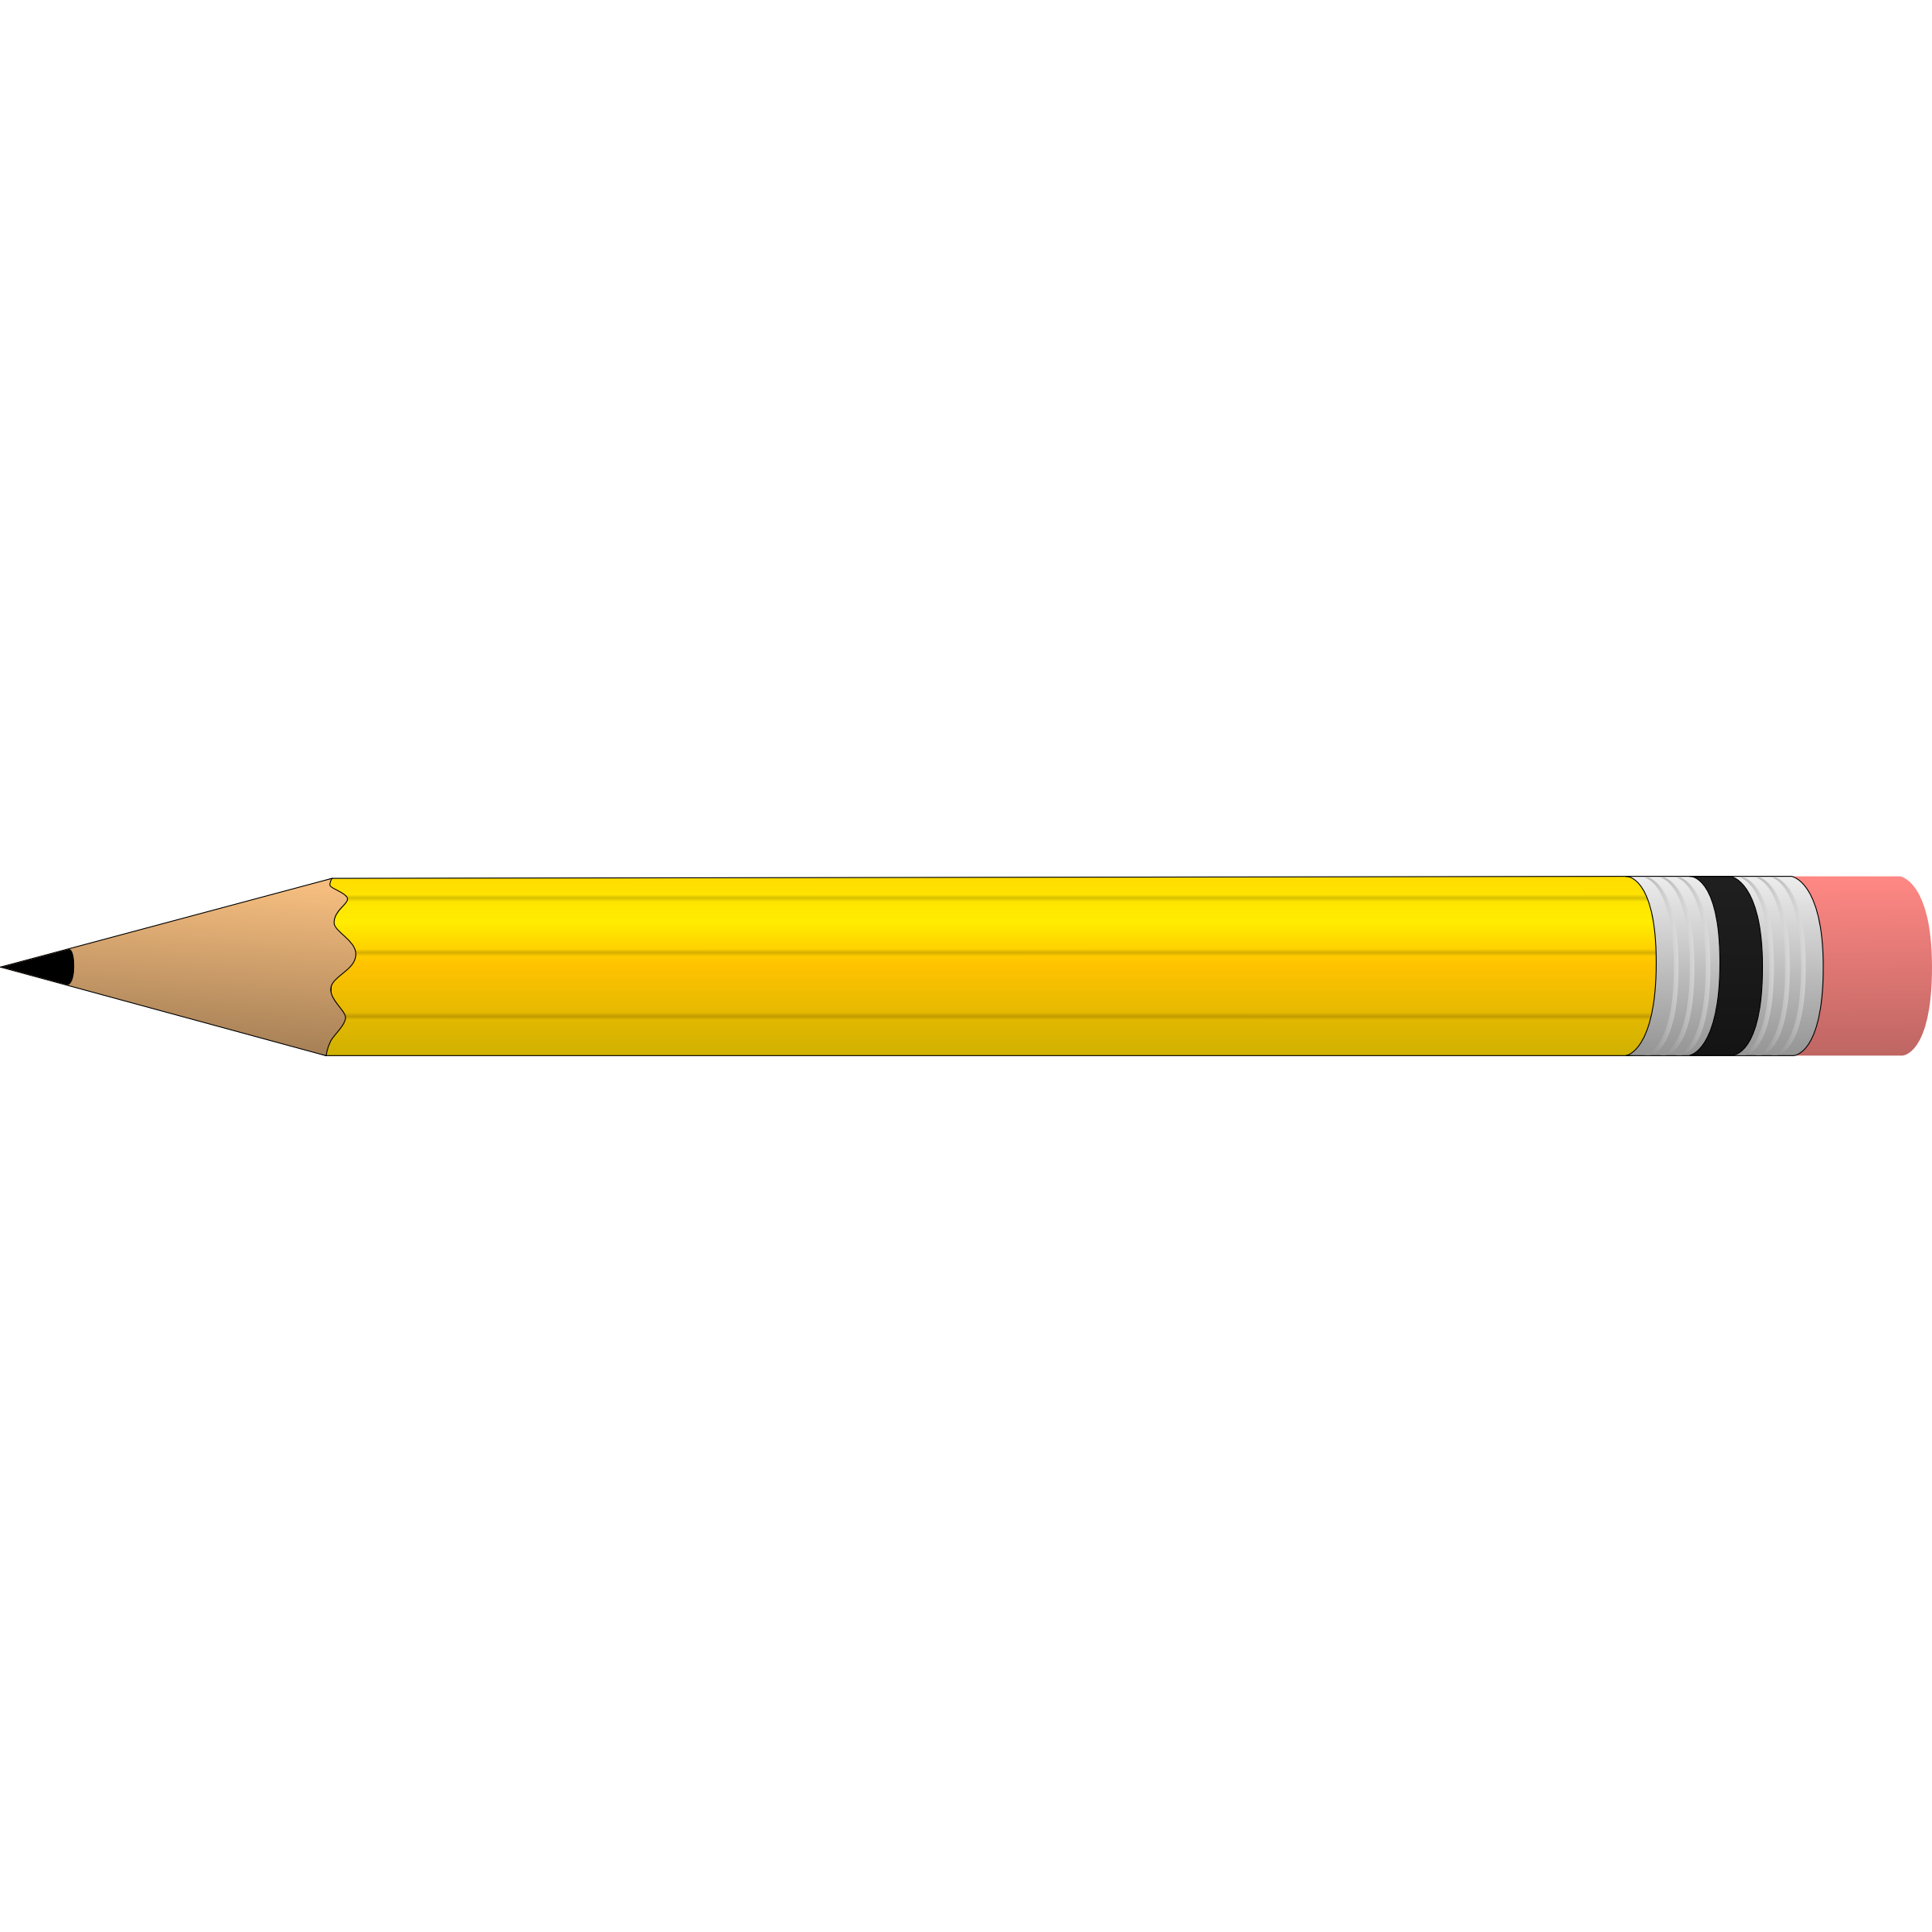 clipart pencil horizontal